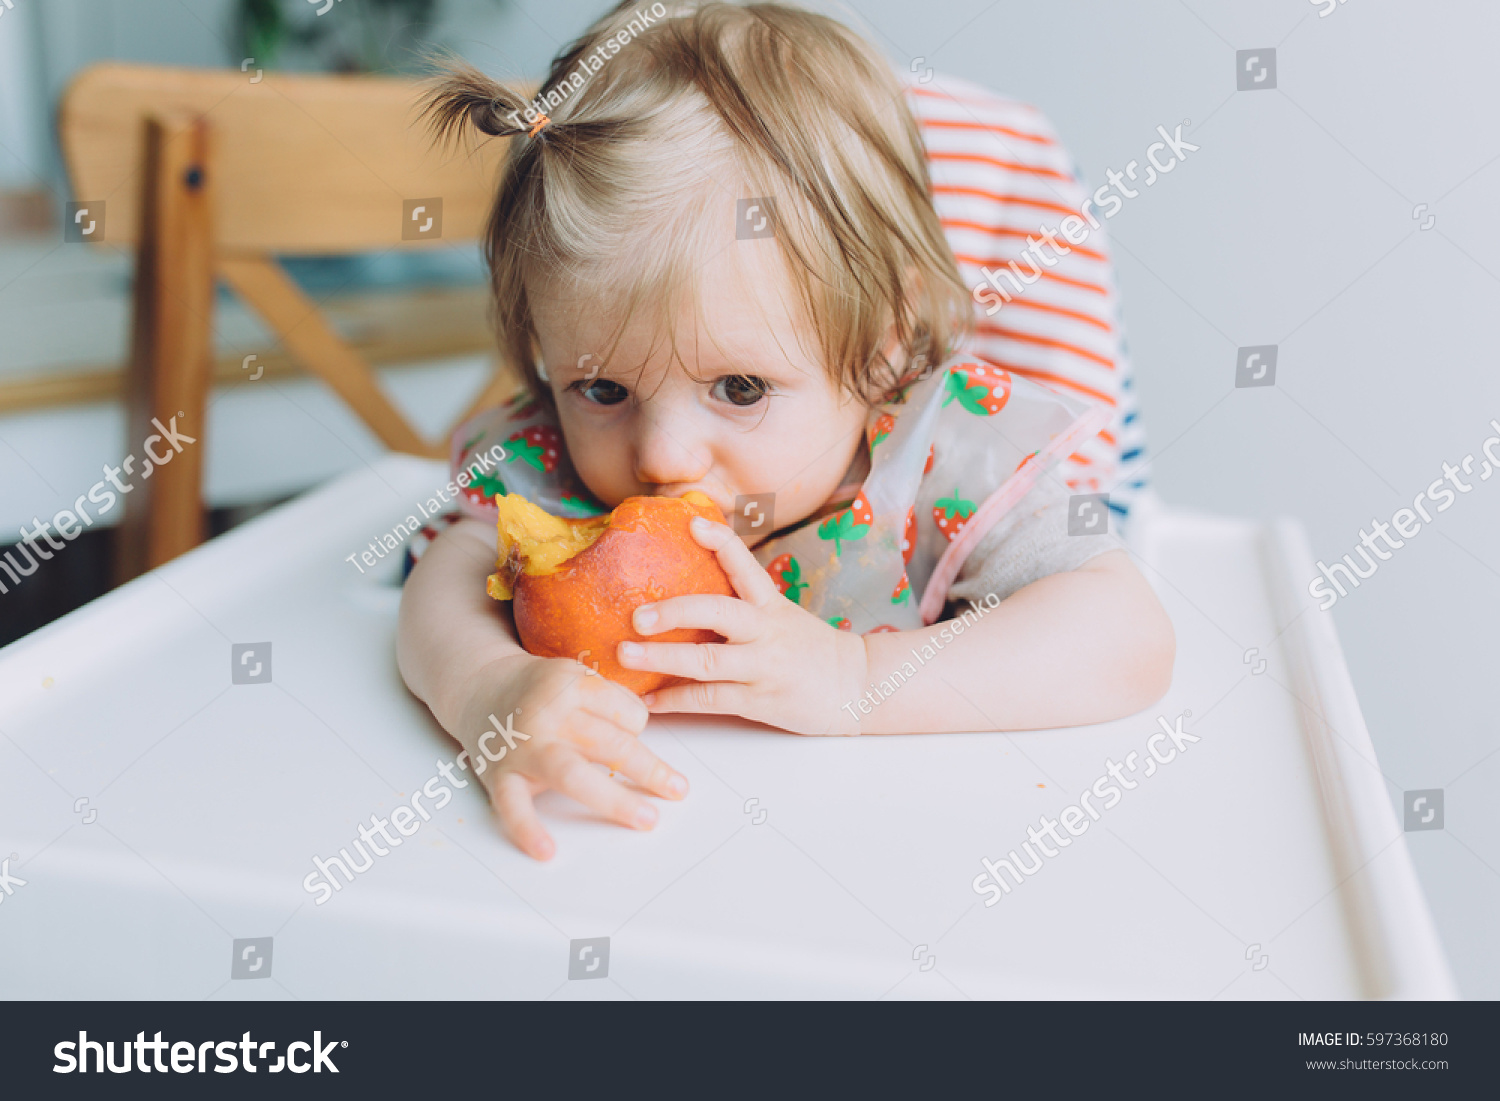 Cute Little Baby Smiling Eating Peach Stock Photo 597368180 - Shutterstock